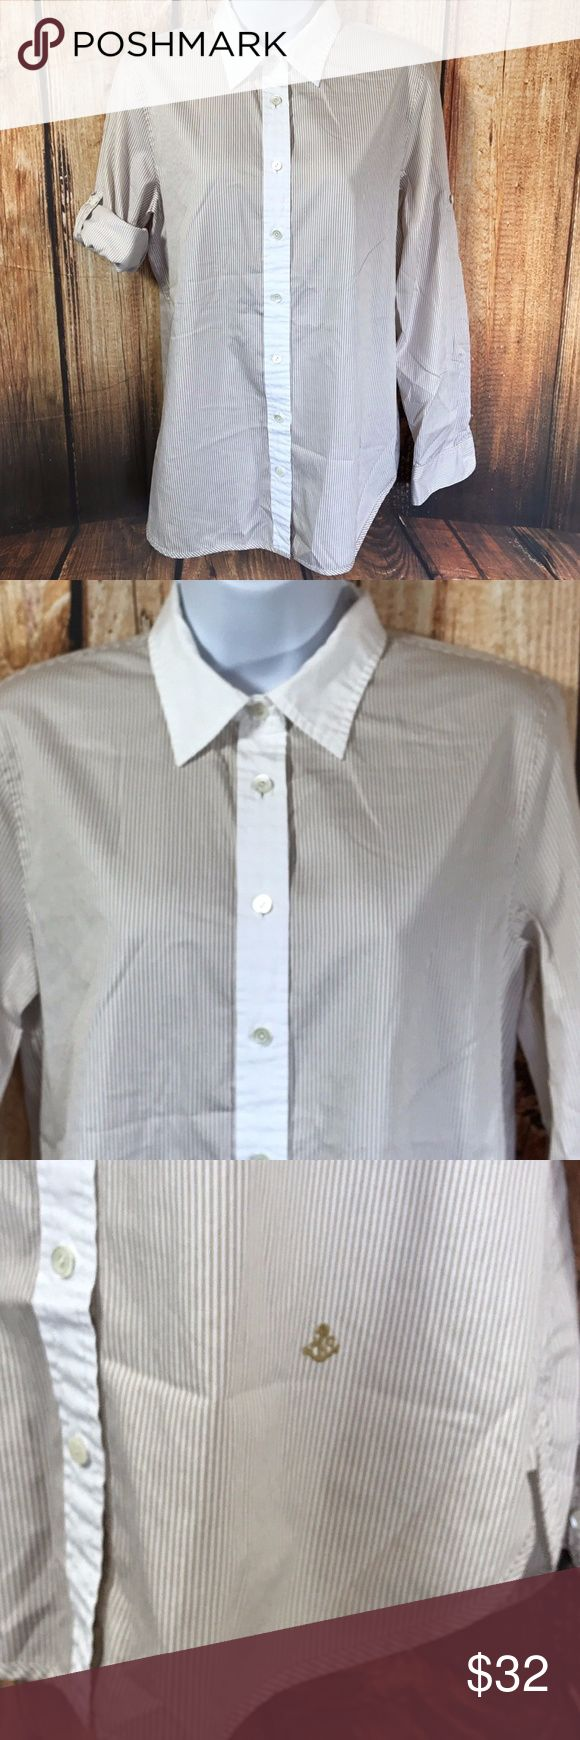 "J.Crew Adjustable Sleeve Button Front Shirt Washed Shirts by J.Crew  Adjustable sleeve length with button tabs, striped body with solid collar and placket, 100% pure cotton  Size 4  Measures 18"" across bust  Measures 28"" long, from center back  Sleeves measure 23"" from shoulder seam, fully extended  Gently worn, good condition J. Crew Tops Button Down Shirts"